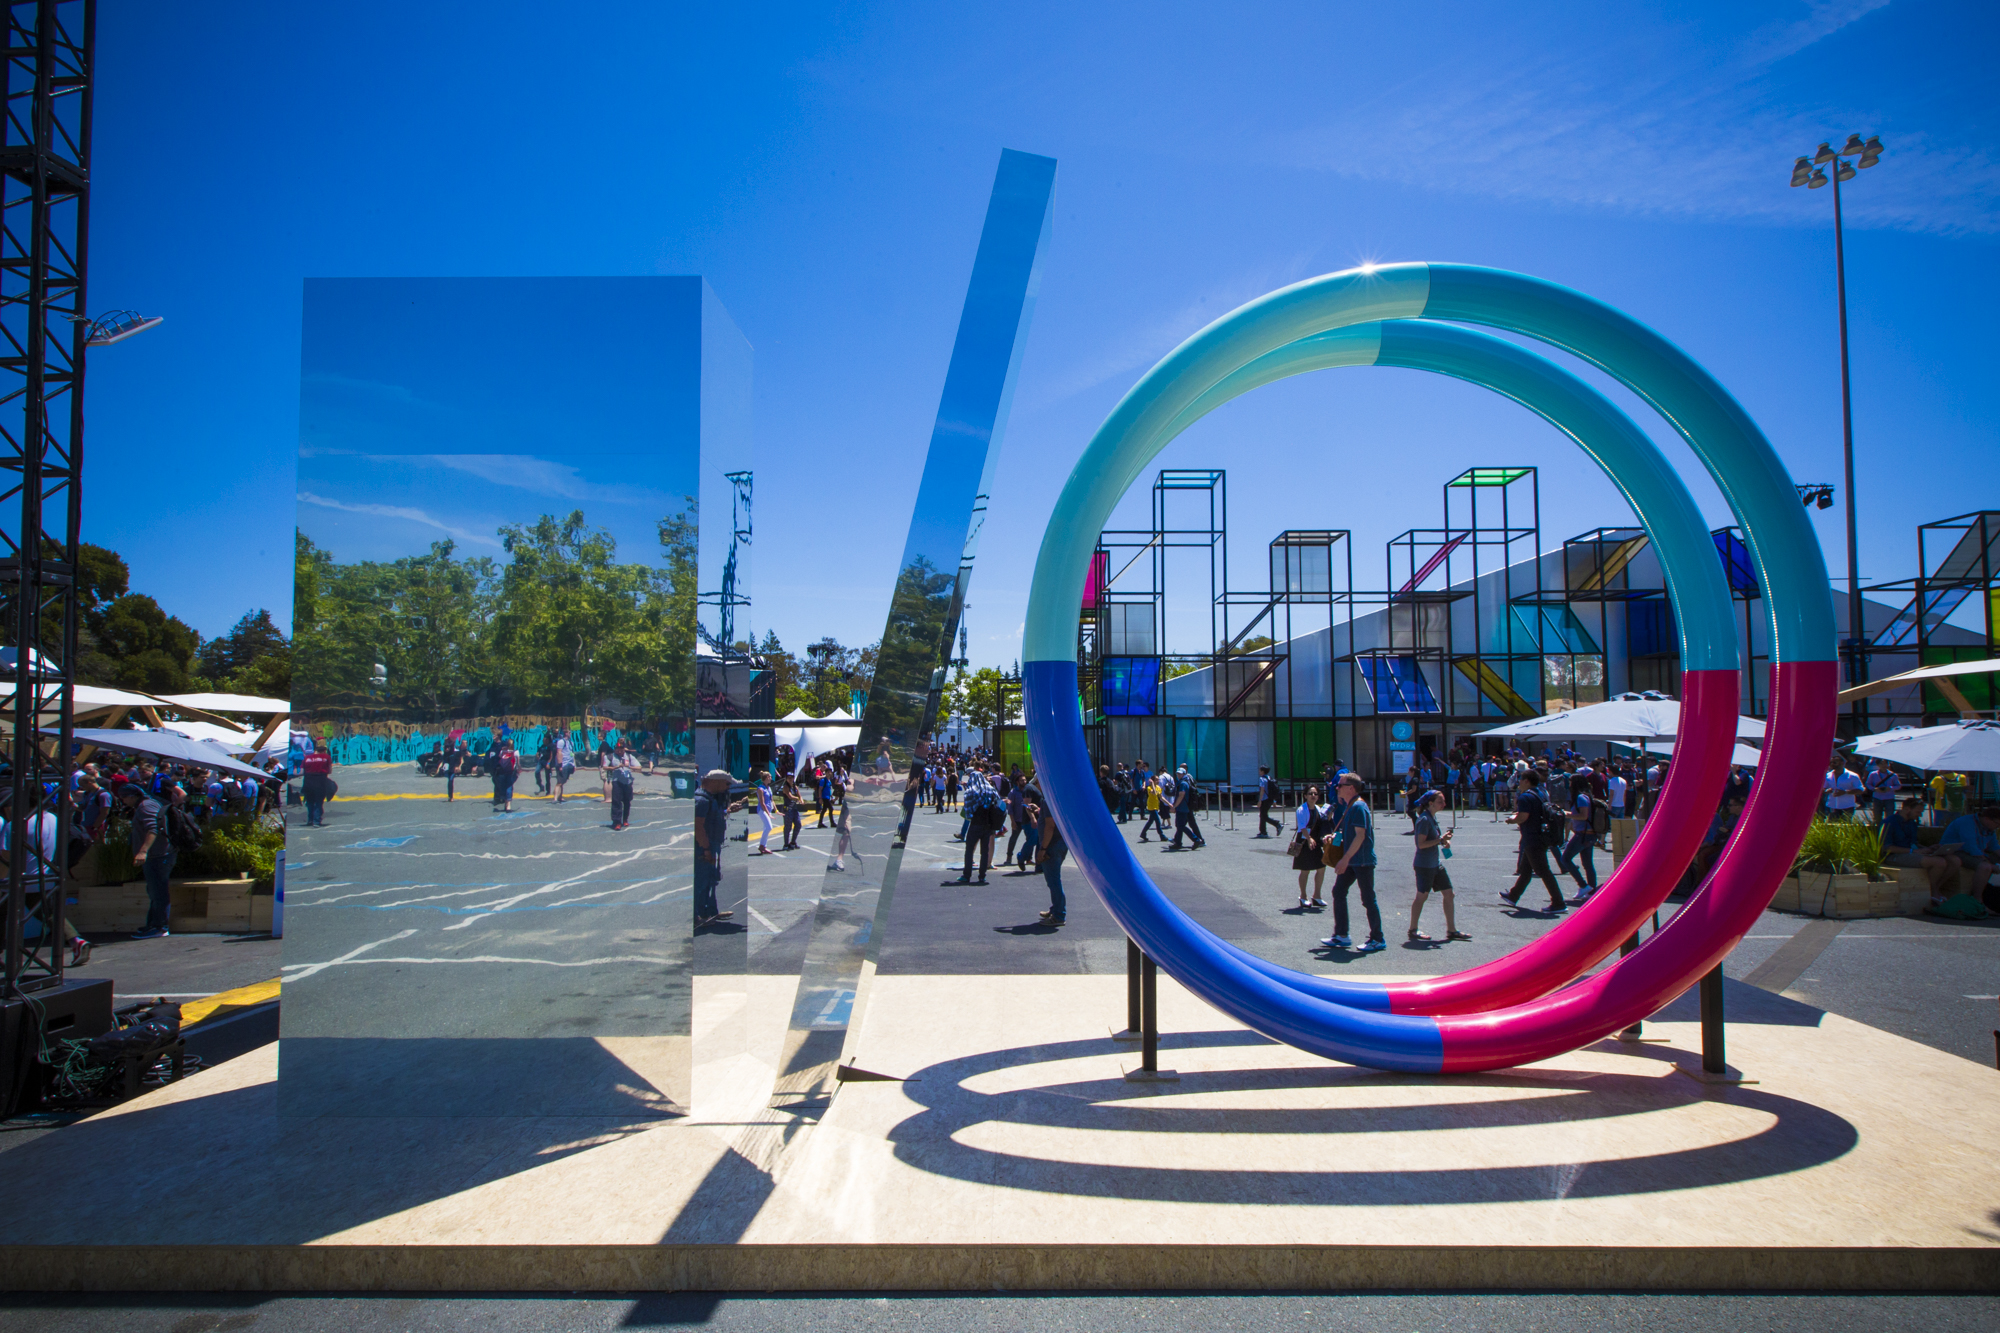 From nerd heaven to Coachella Lite: Google I/O has changed